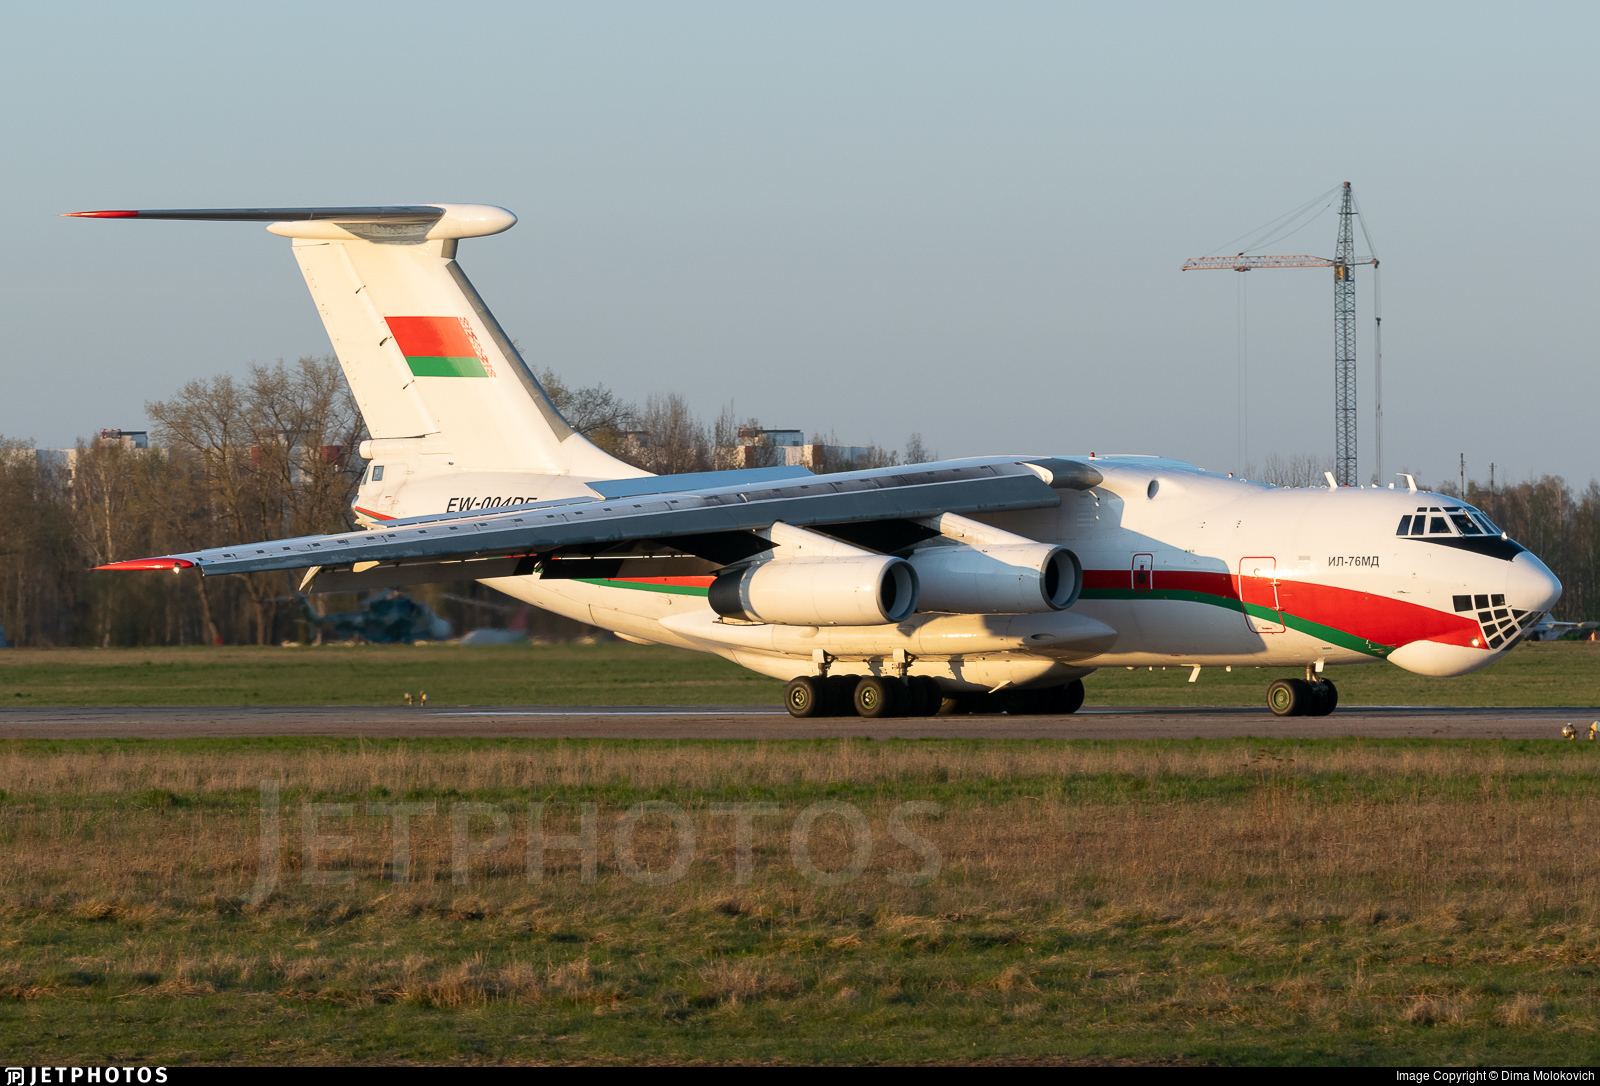 EW-004DE - Ilyushin IL-76MD - Belarus - Air Force